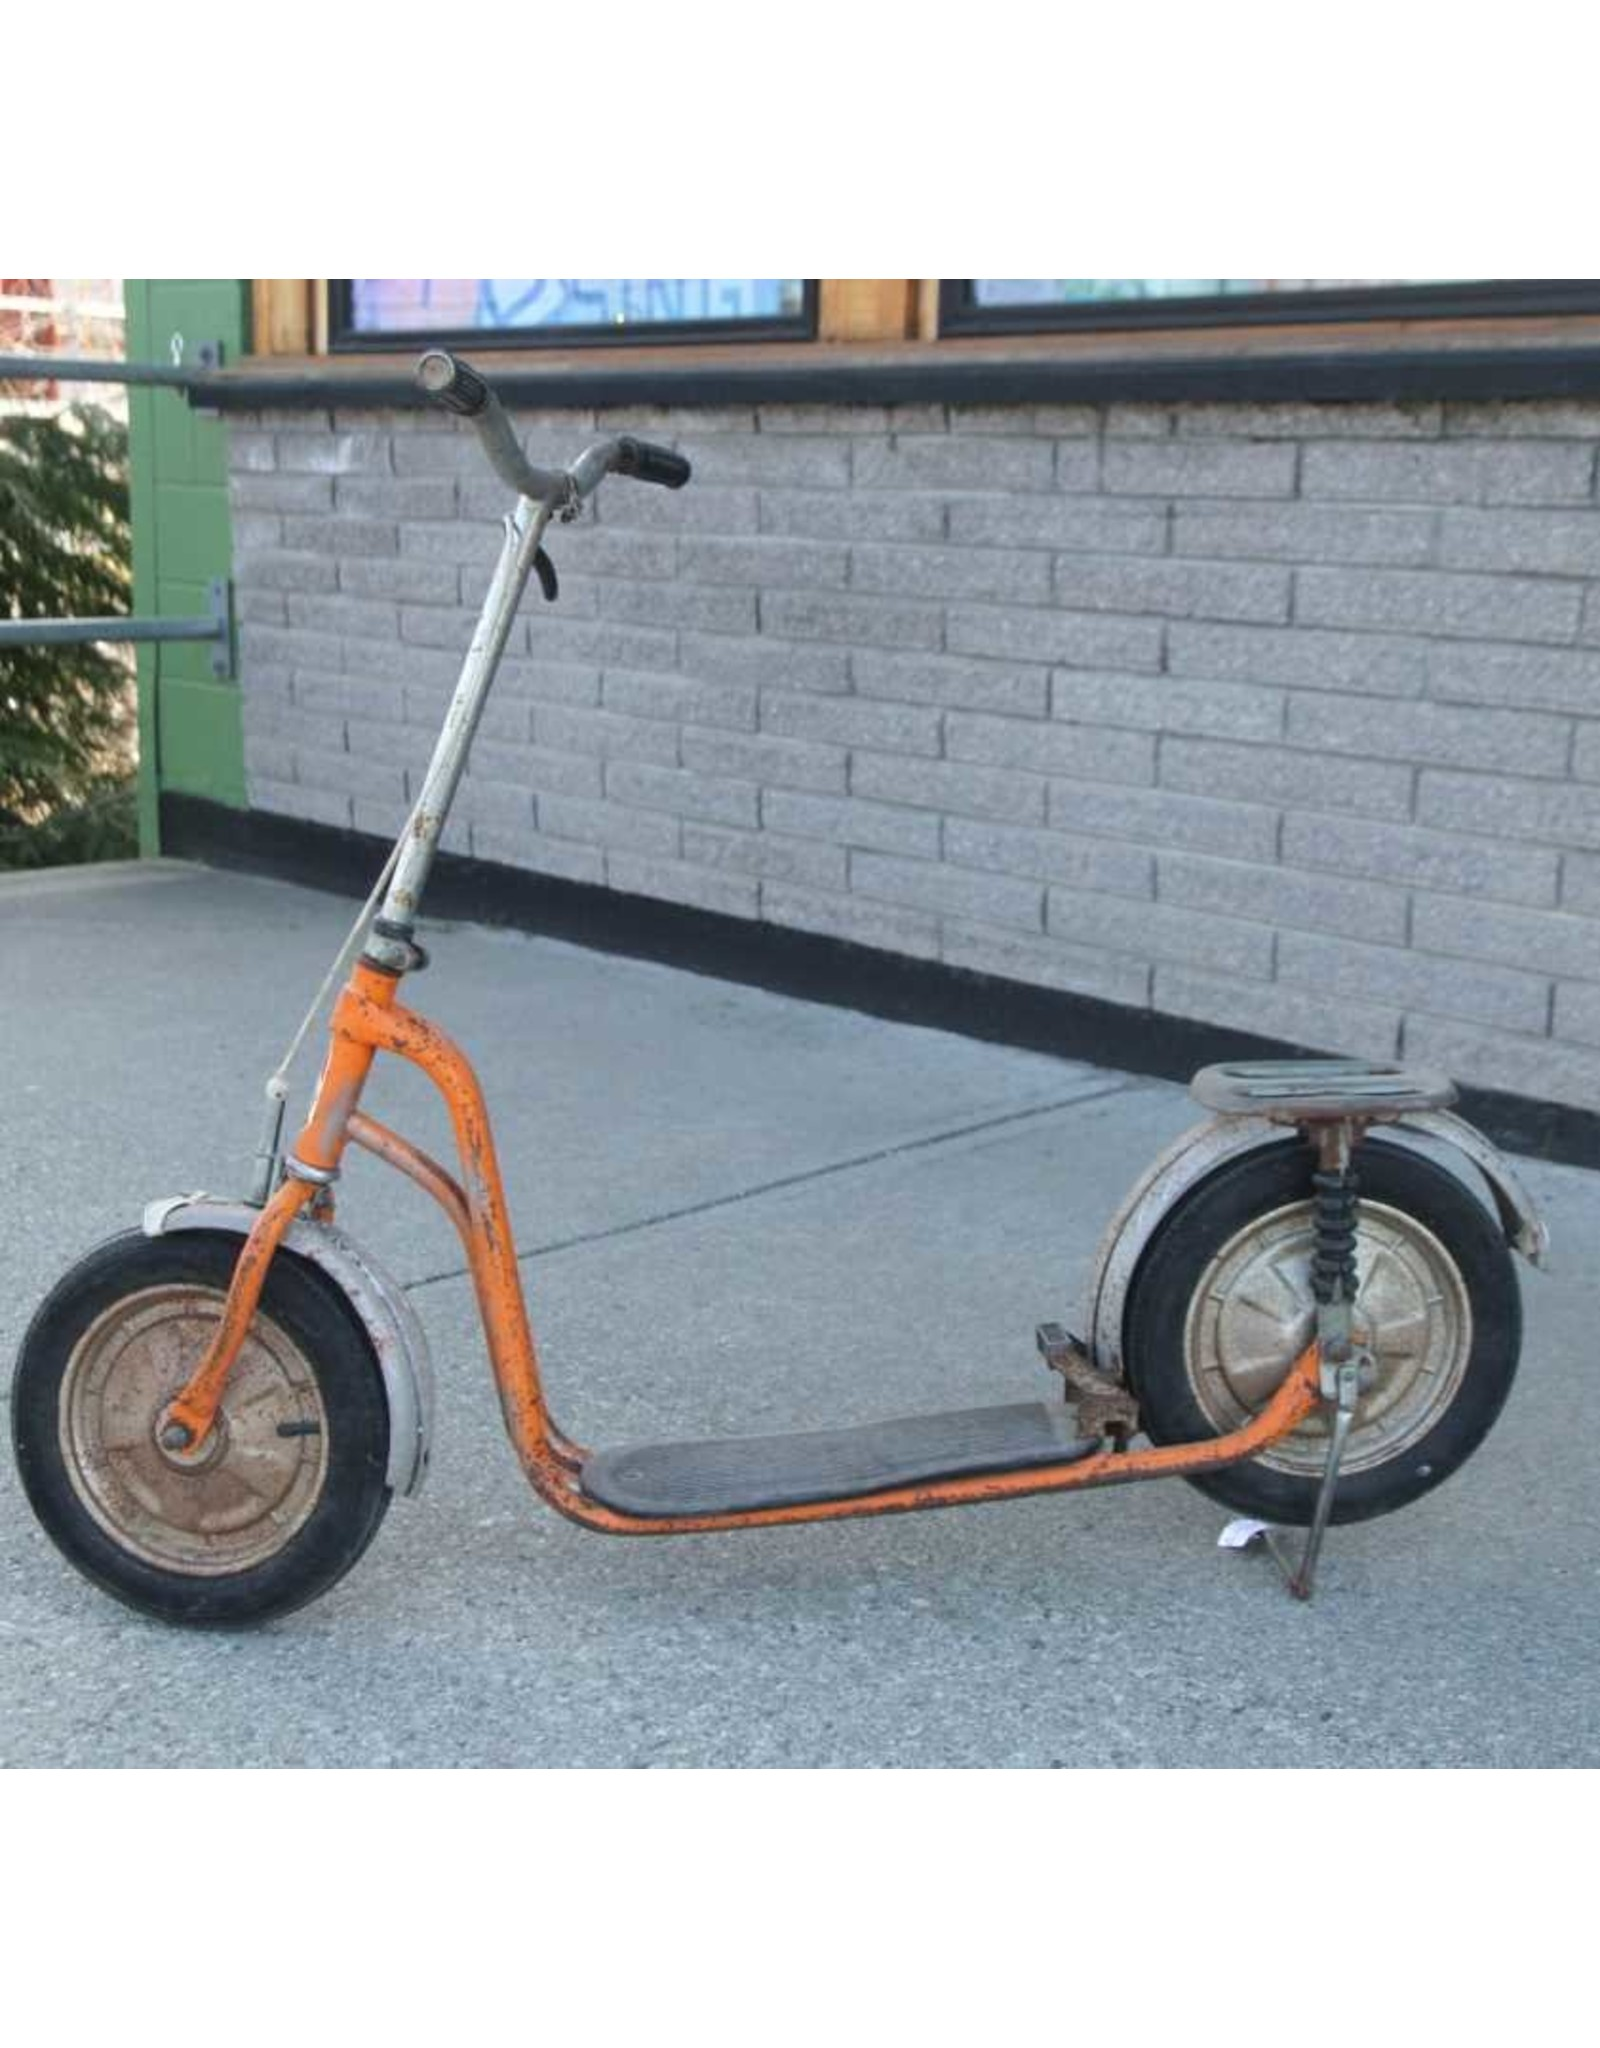 Scooter - Vintage Puky scooter, orange